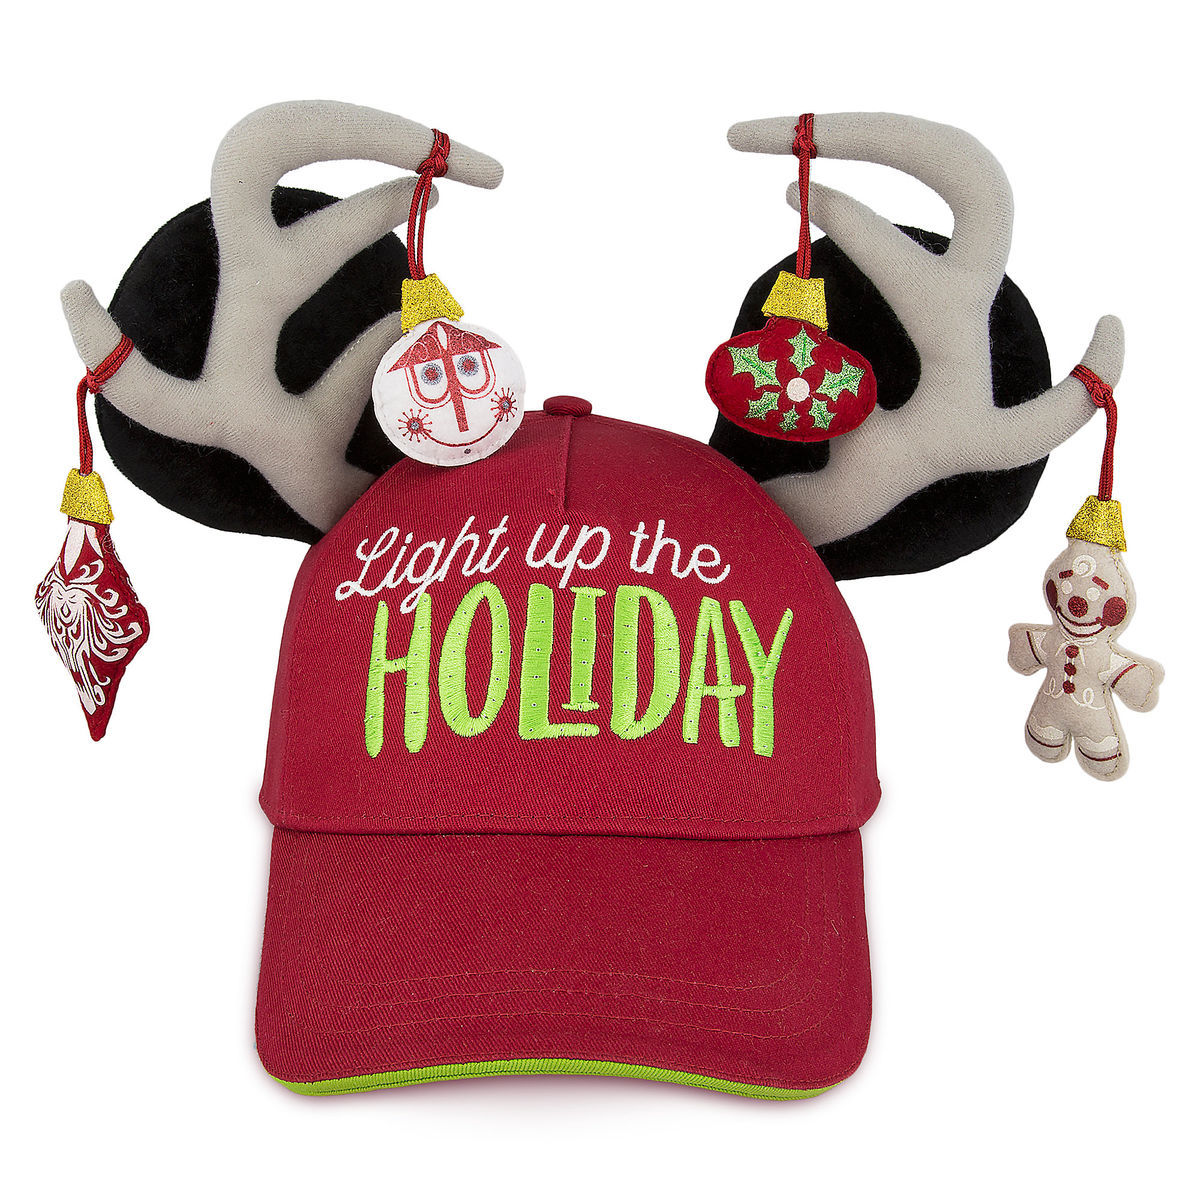 025ea7c9d8613 Sasaki Time  Giveaway  Win a Light Up The Holiday Hat from Disneyland